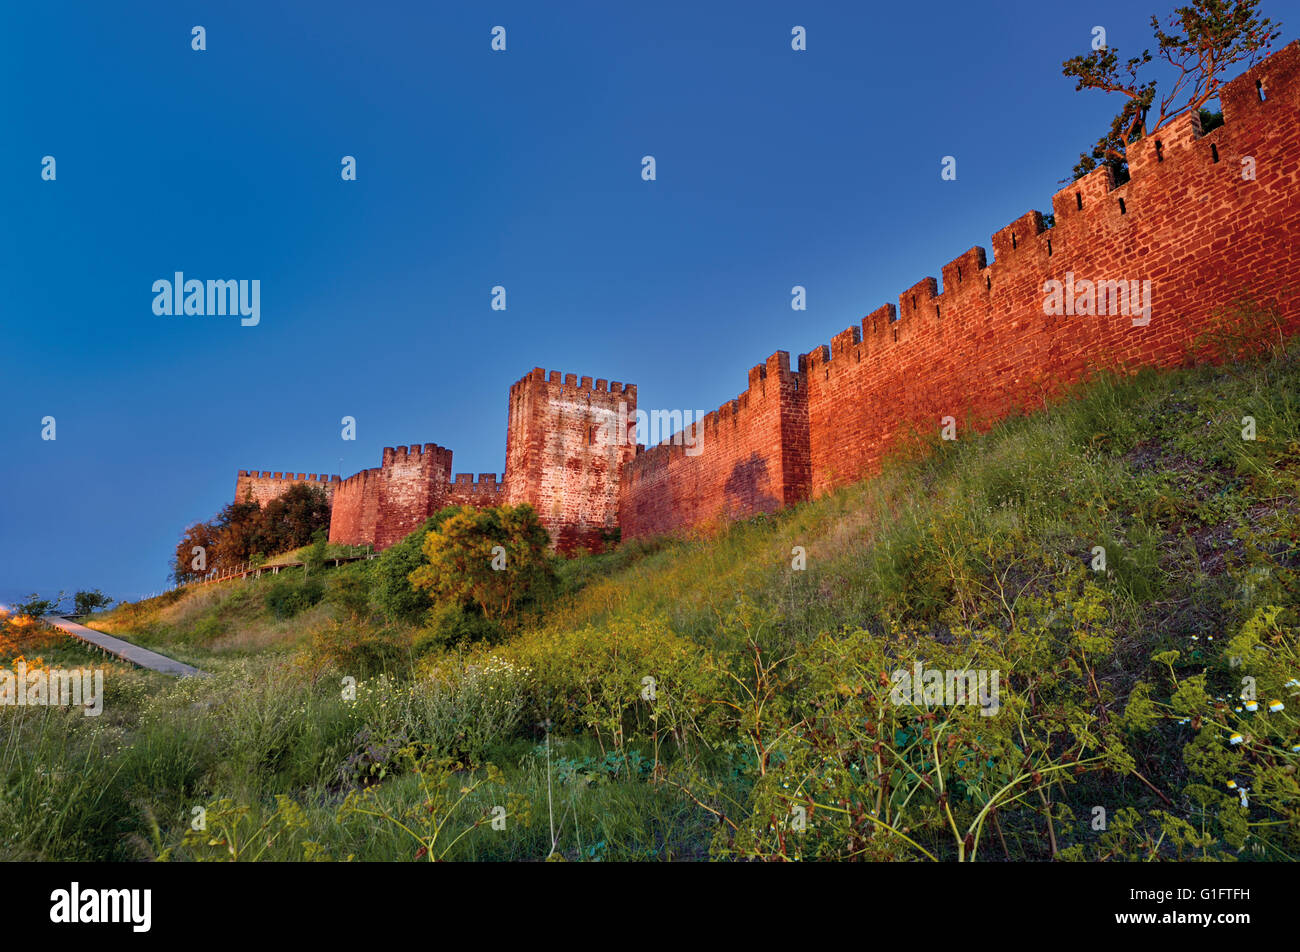 Portugal, Algarve: View to Moorish castle of Silves - Stock Image